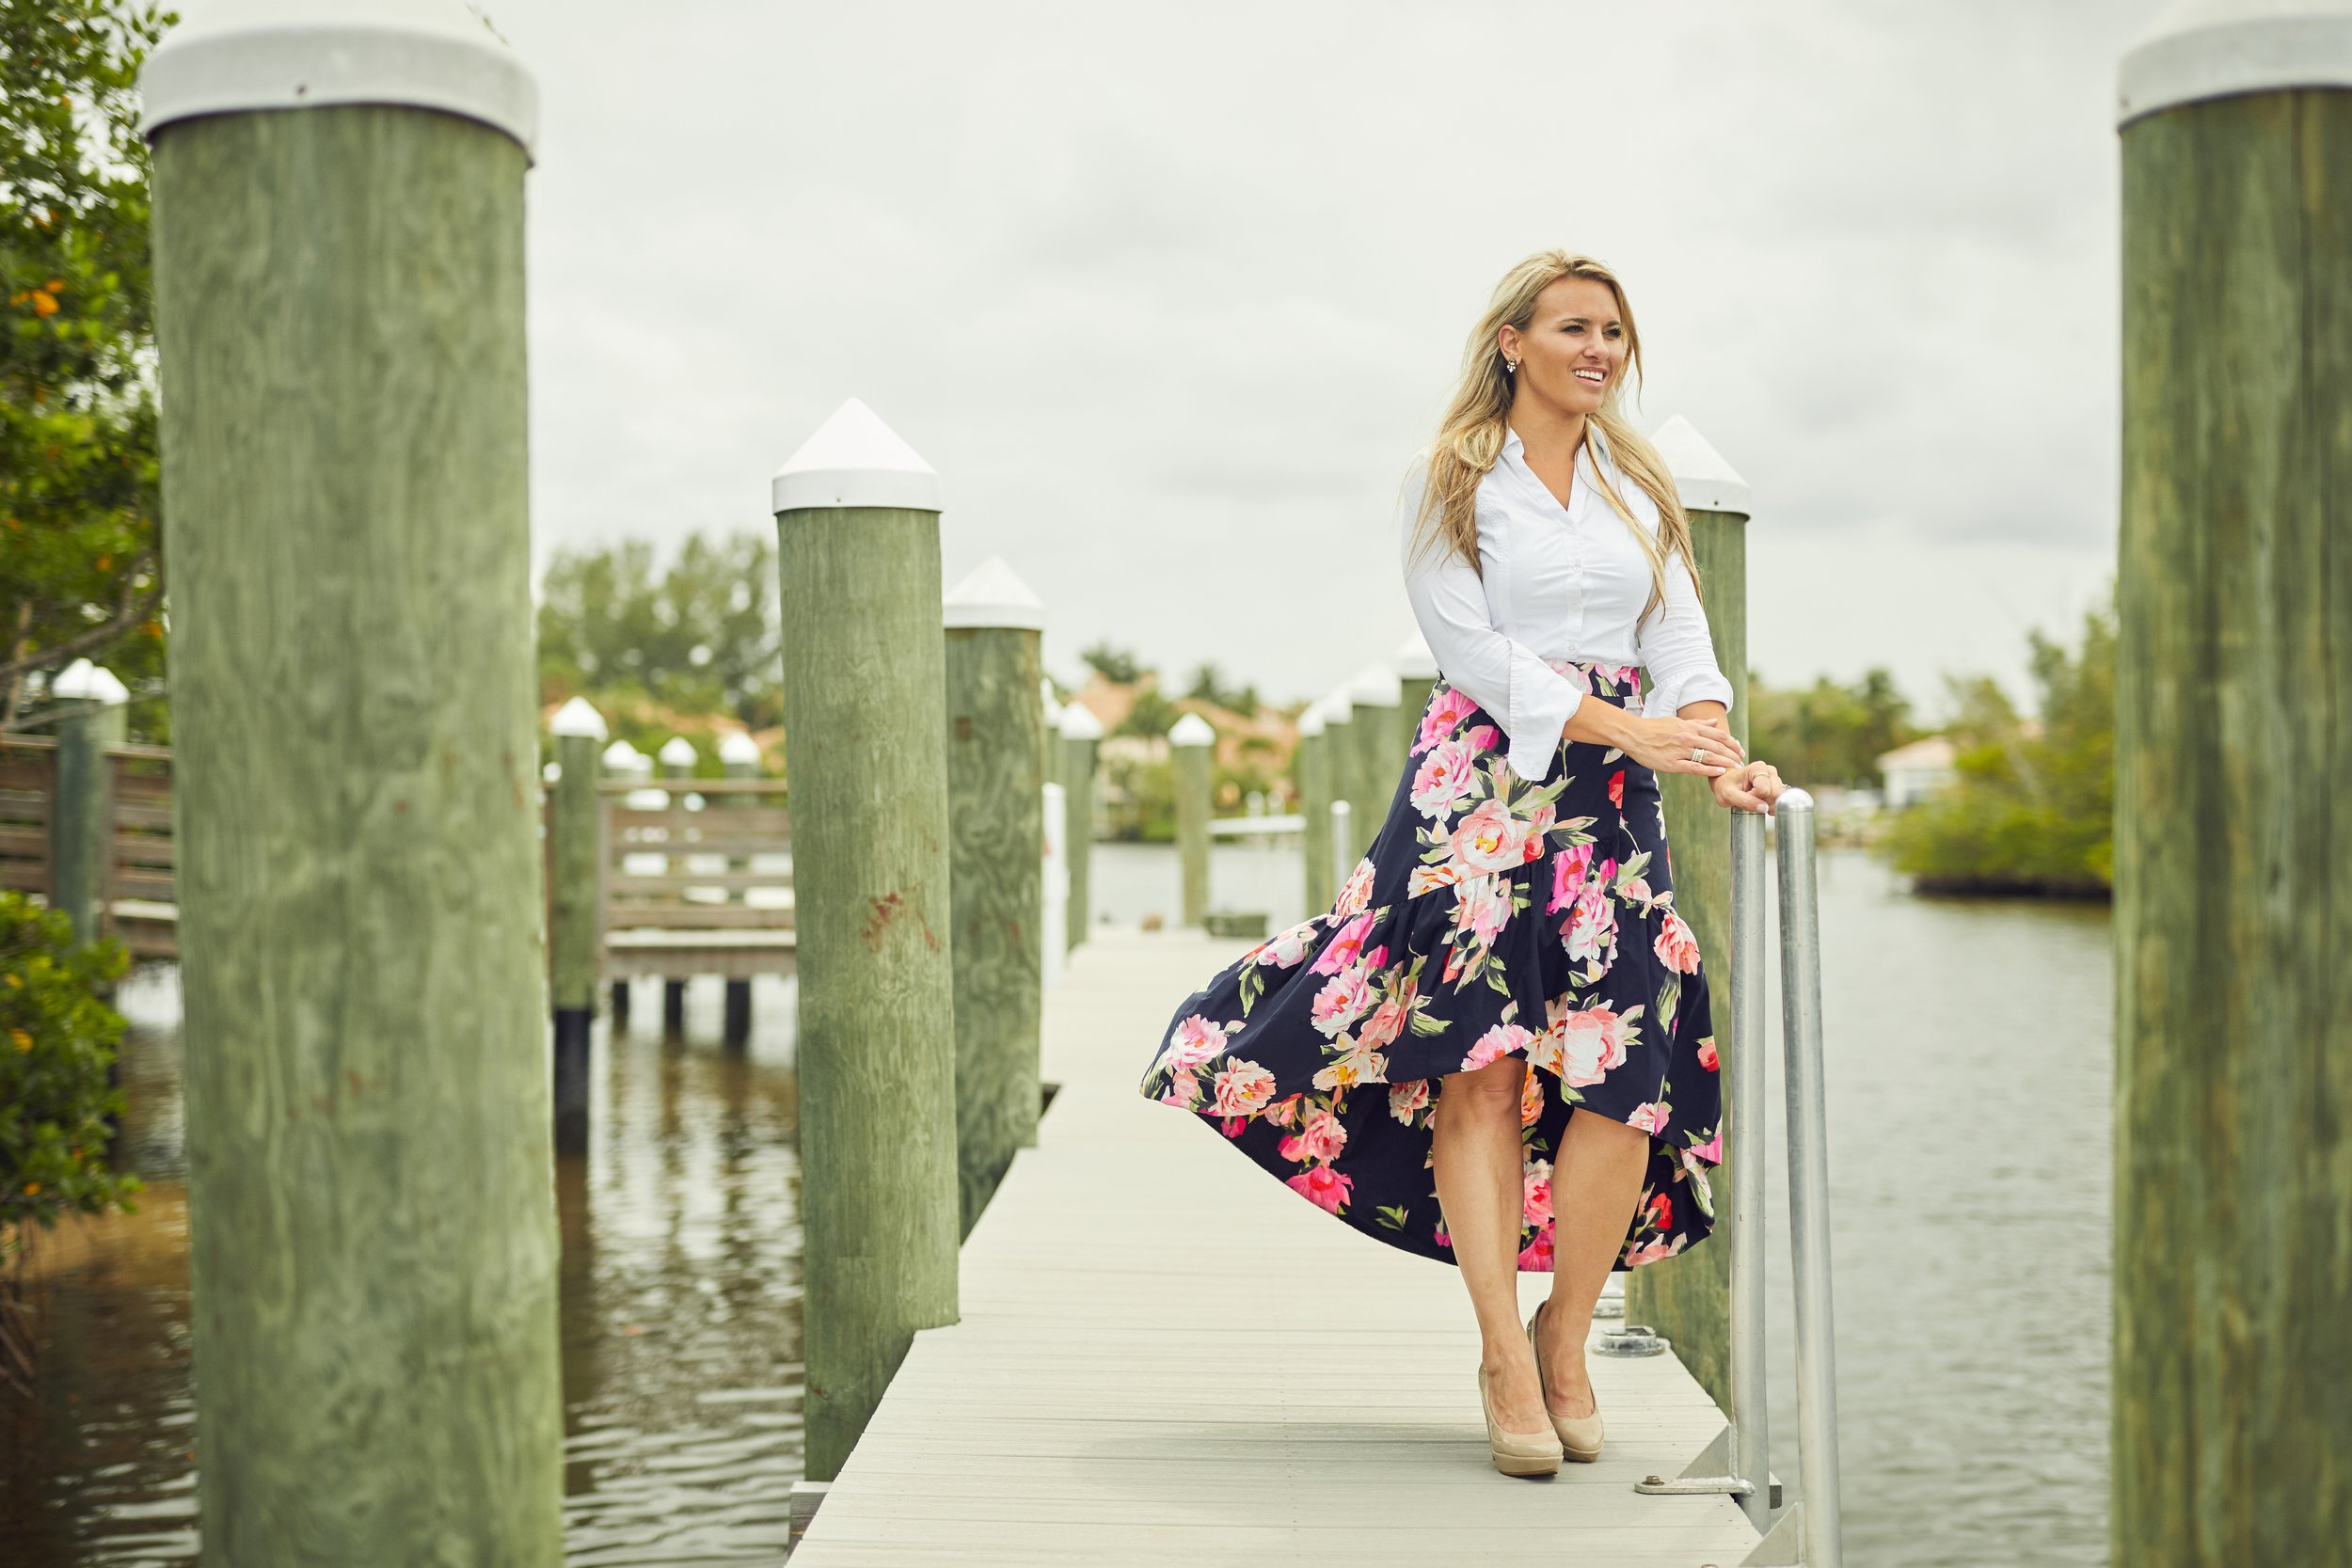 """2019 Best Real Estate Agent - Holly Meyer Lucas has been nominated for Best Real Estate Agent in Palm Beach County!You can find the Real Estate Agent category under """"Home, Home Services, and Finance."""""""